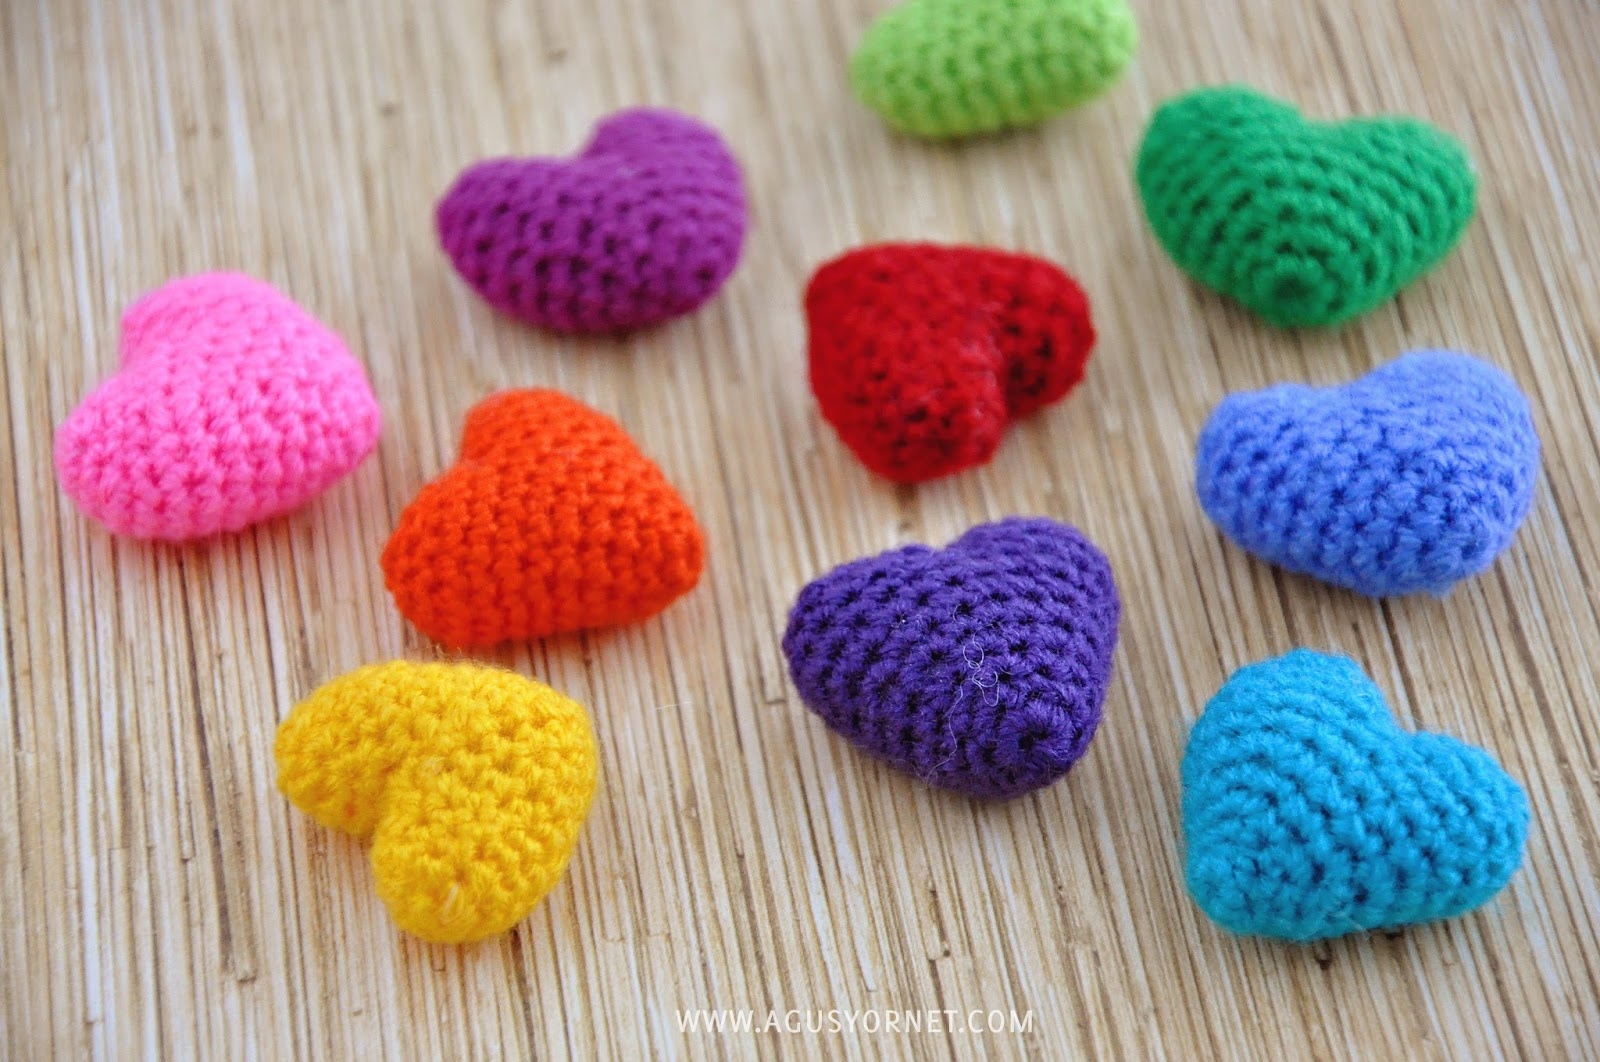 What To Crochet : ... : Corazonctios tejidos a Crochet / Crochet hearts Agus Yornet Blog